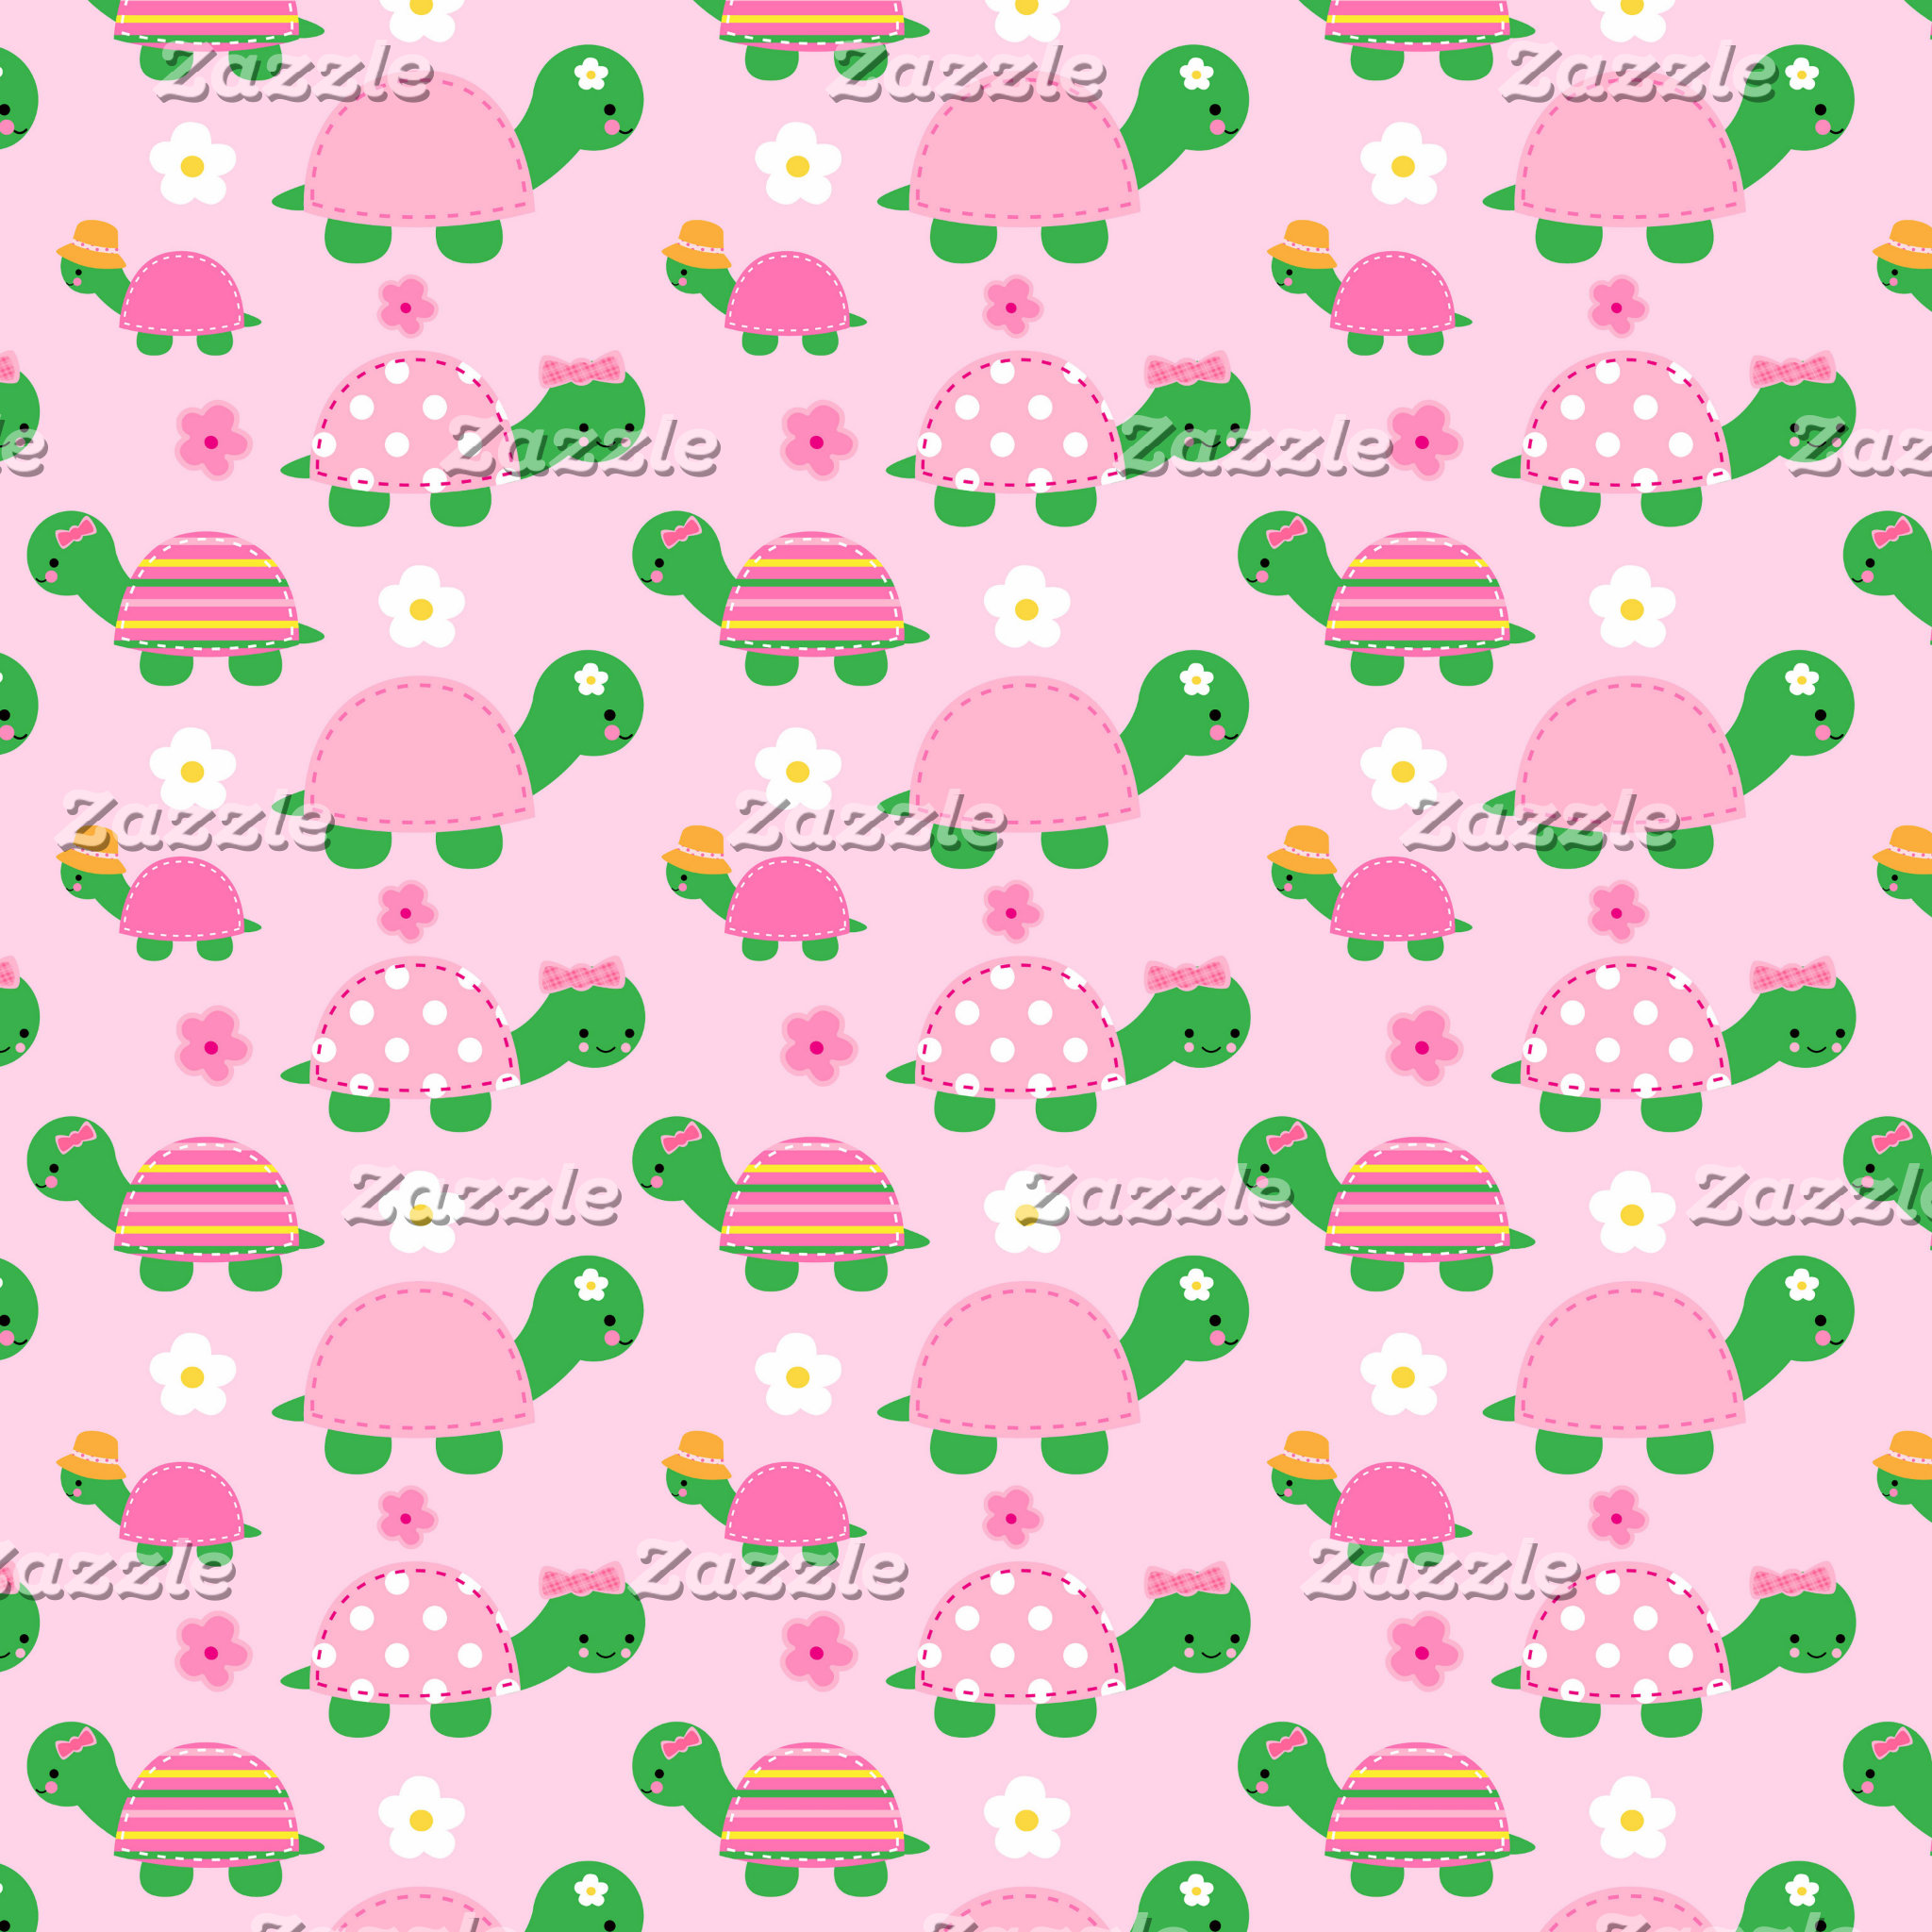 Fun Green and Pink Turtle Bathroom and Home Decor